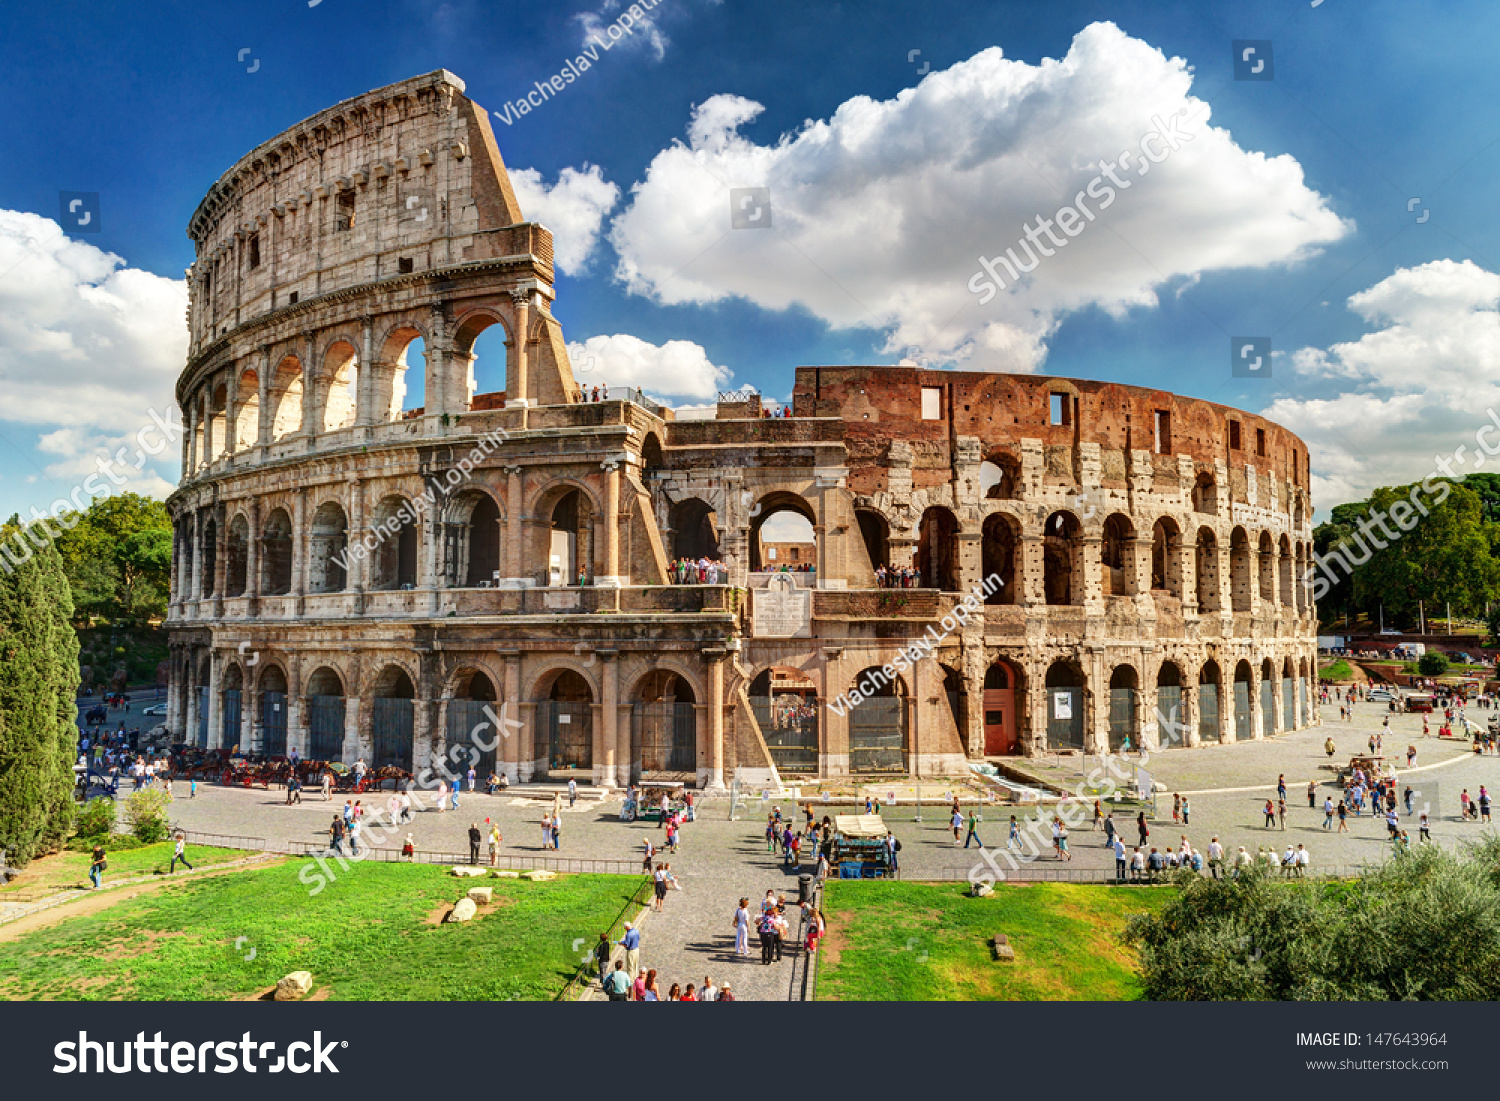 colosseum rome italy stock photo 147643964 shutterstock